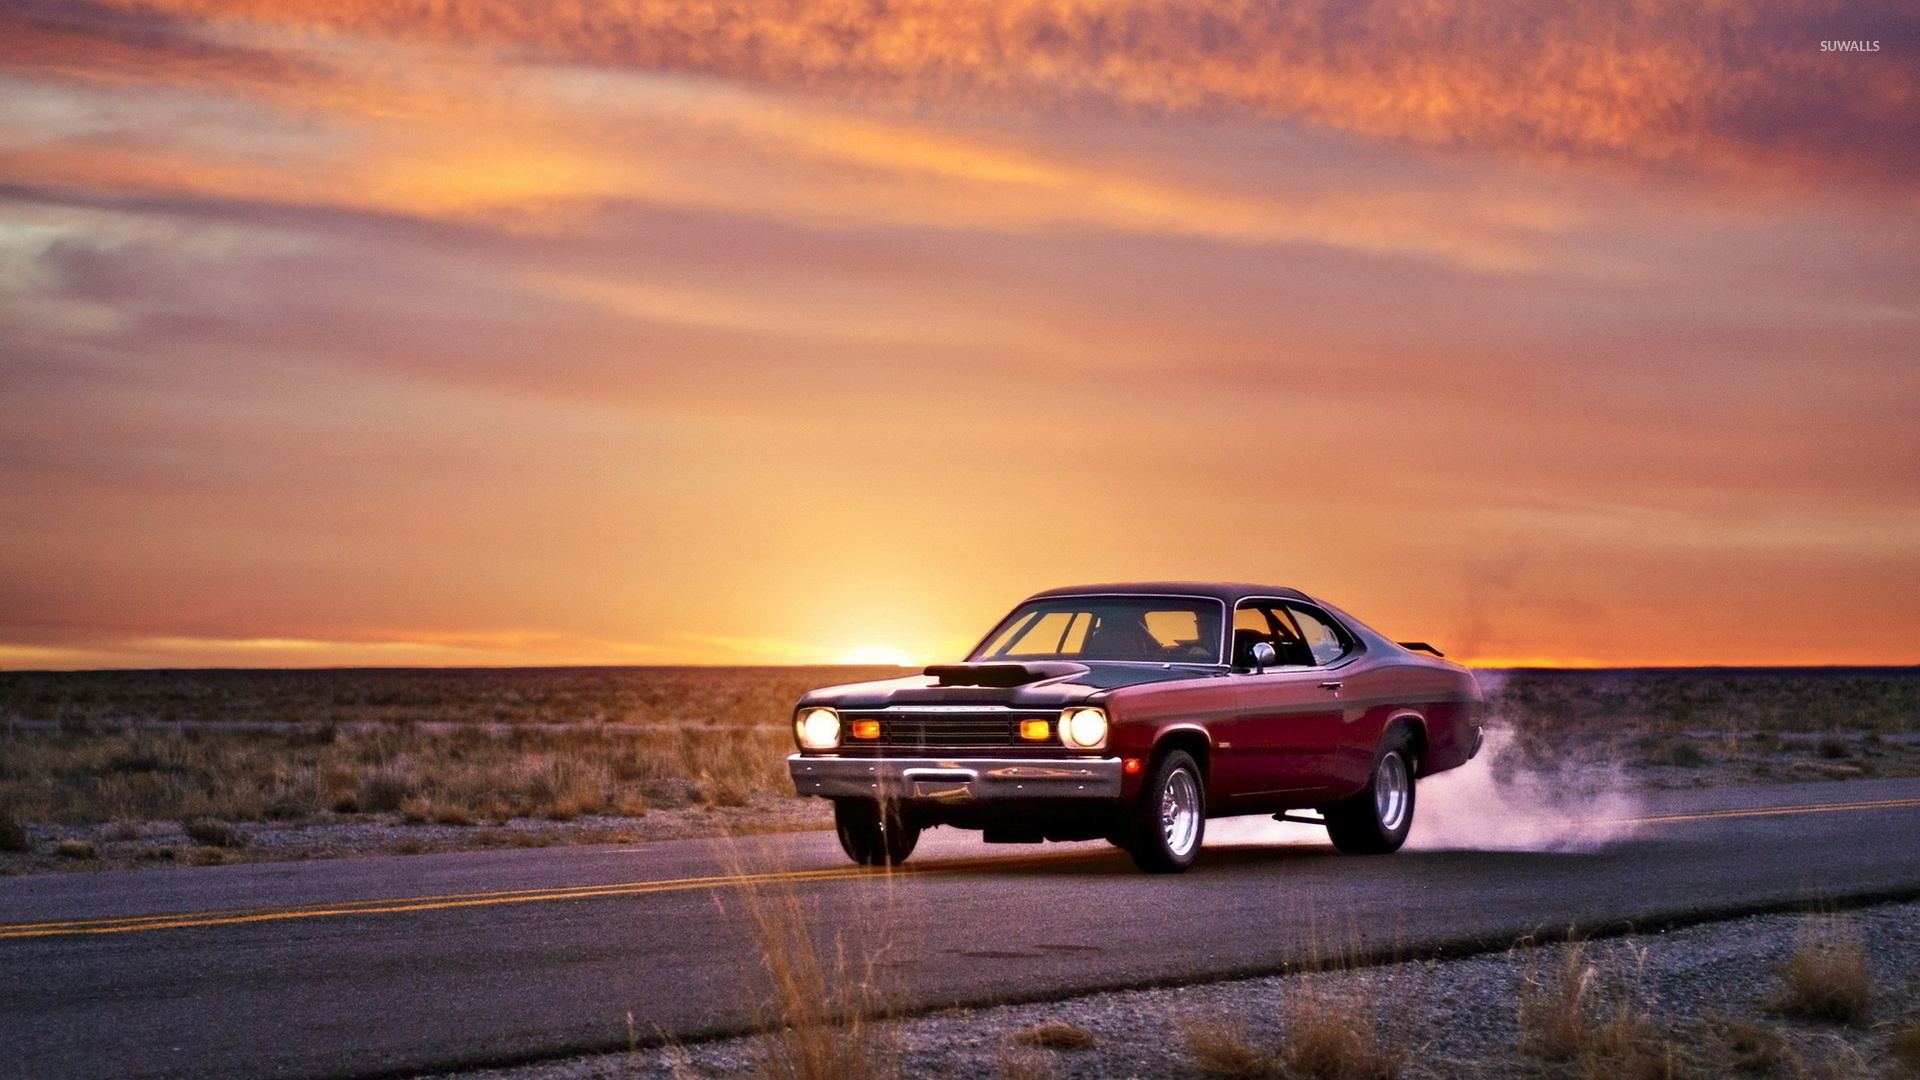 plymouth duster on the road at sunset wallpaper car wallpapers 52240. Black Bedroom Furniture Sets. Home Design Ideas